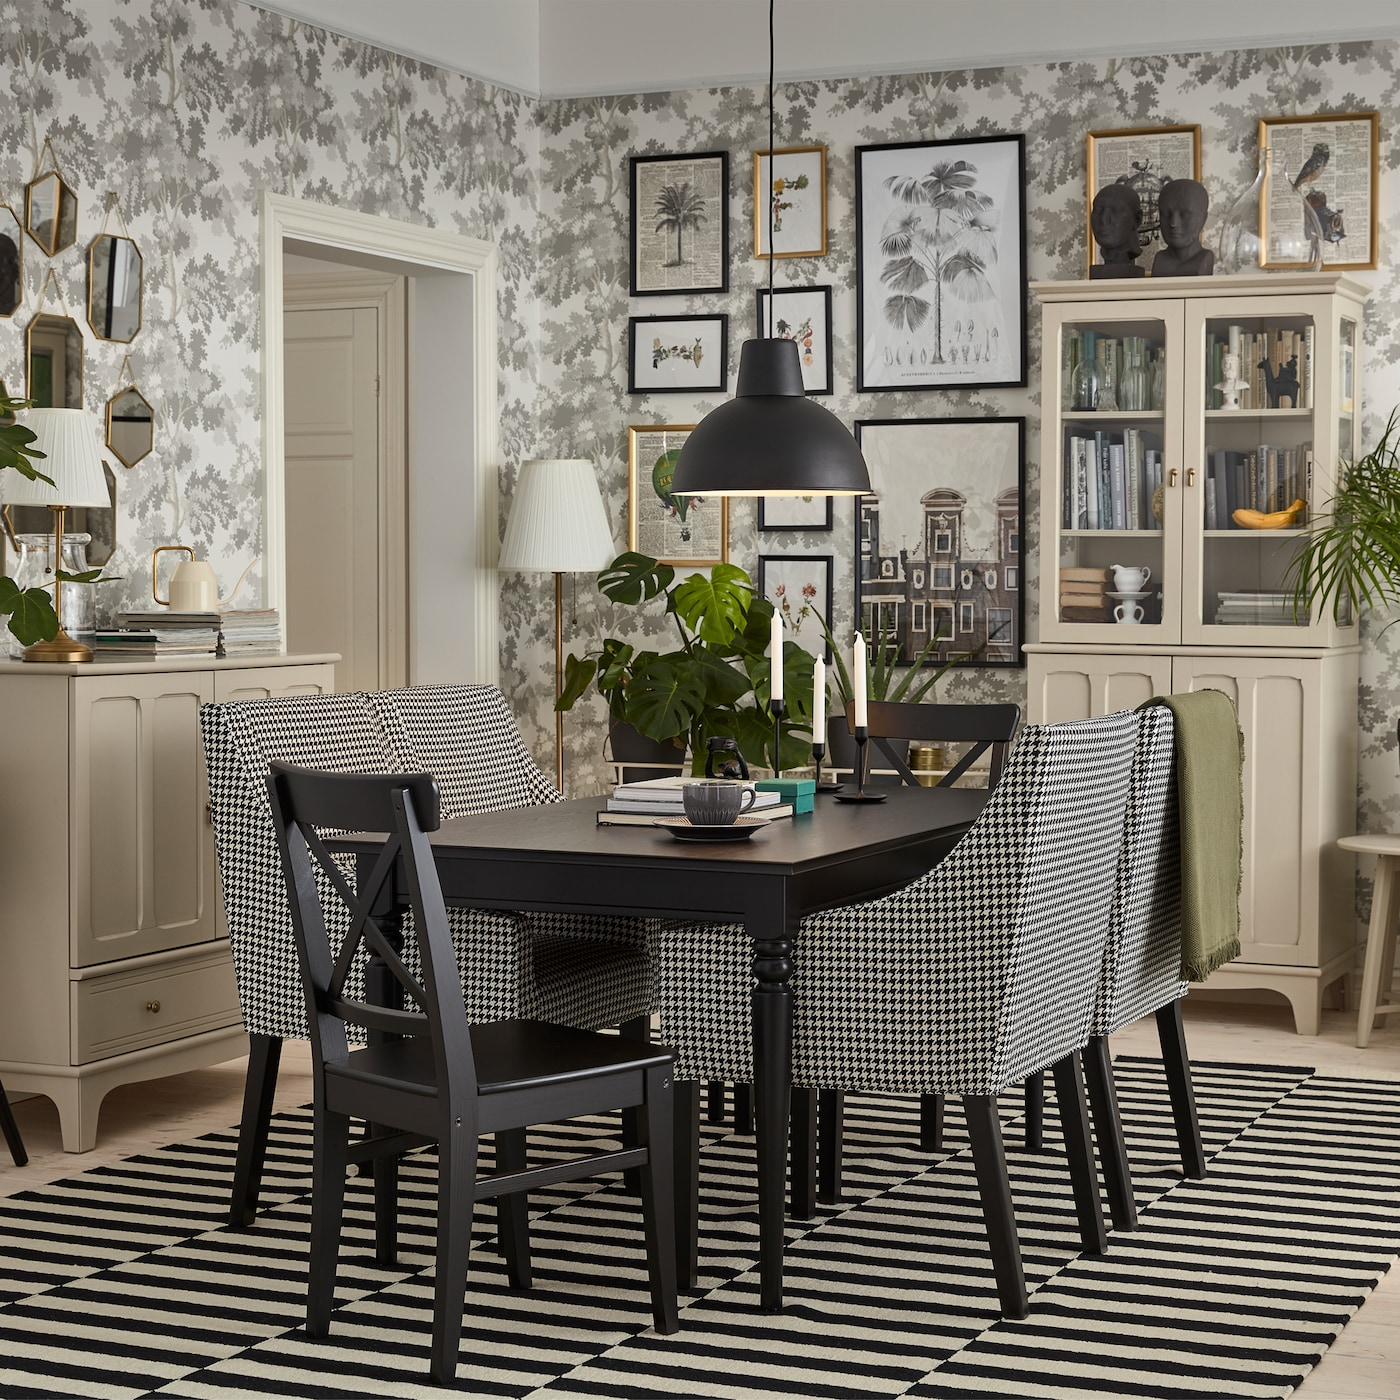 A traditional dining room with a black table, light beige cabinets, black/white chairs with armrests and a striped rug.